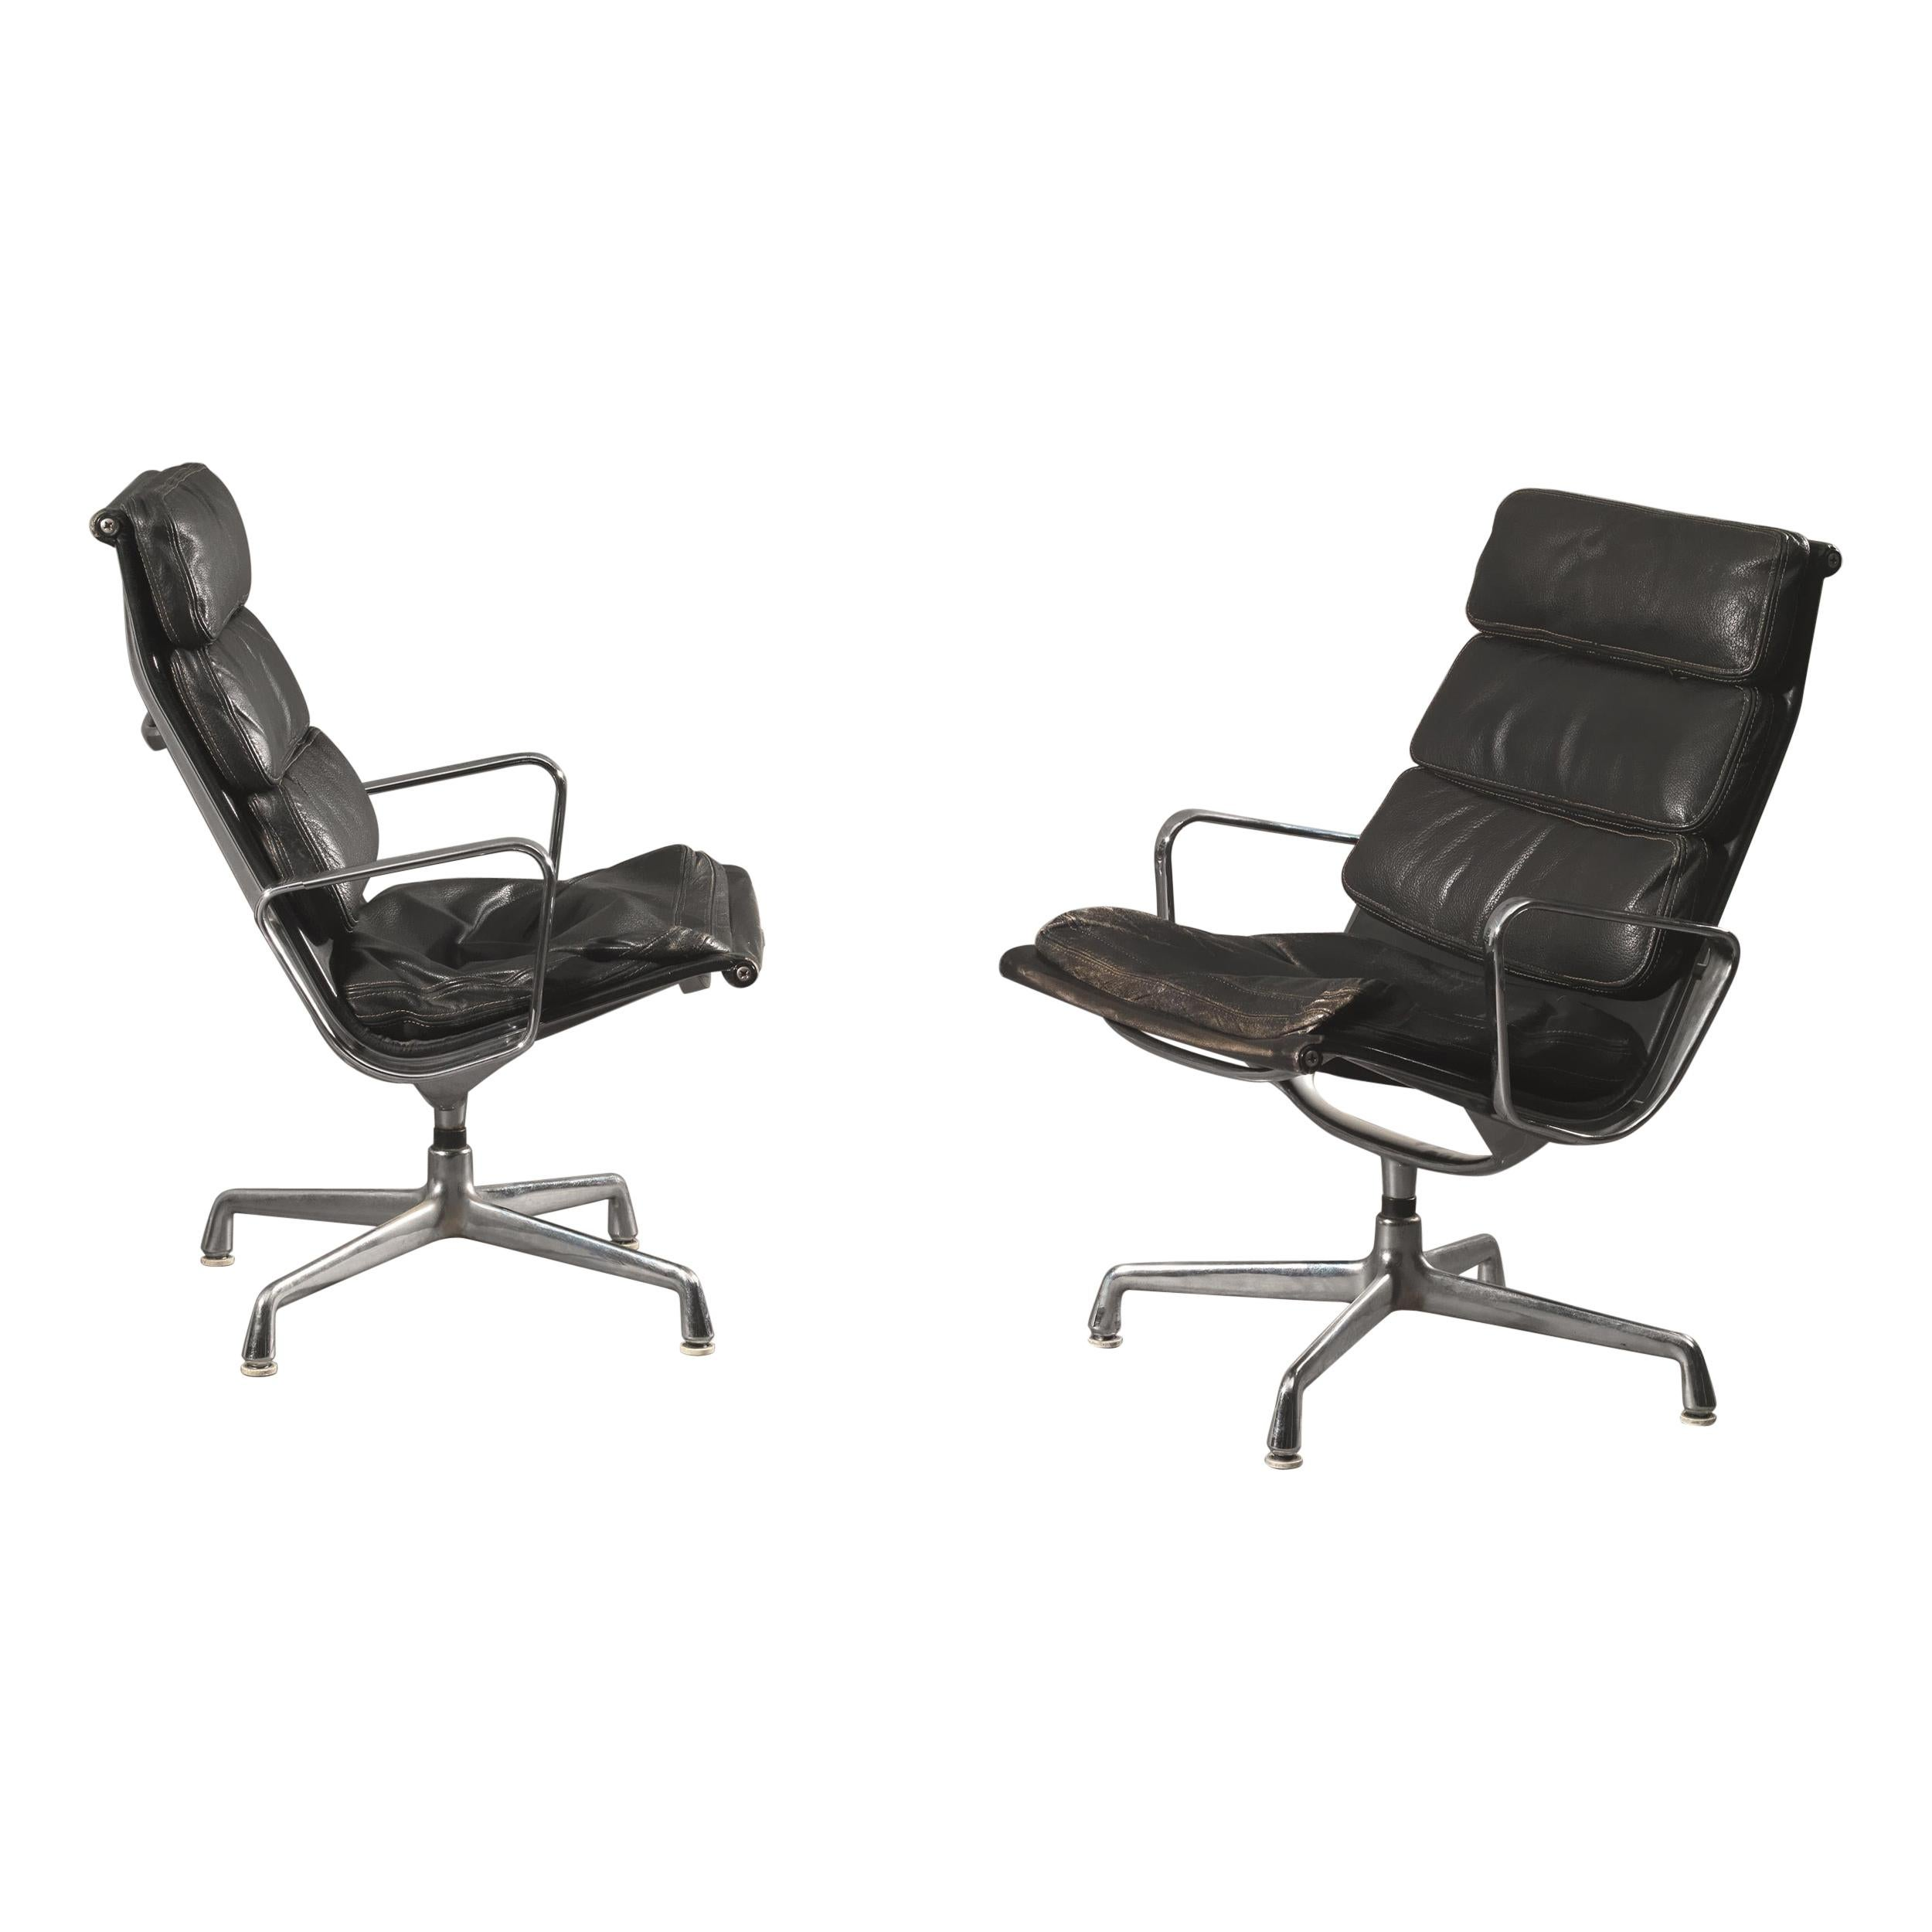 Charles and Ray Eames Set of Two Armchairs Time-Life Herman Miller, 1960